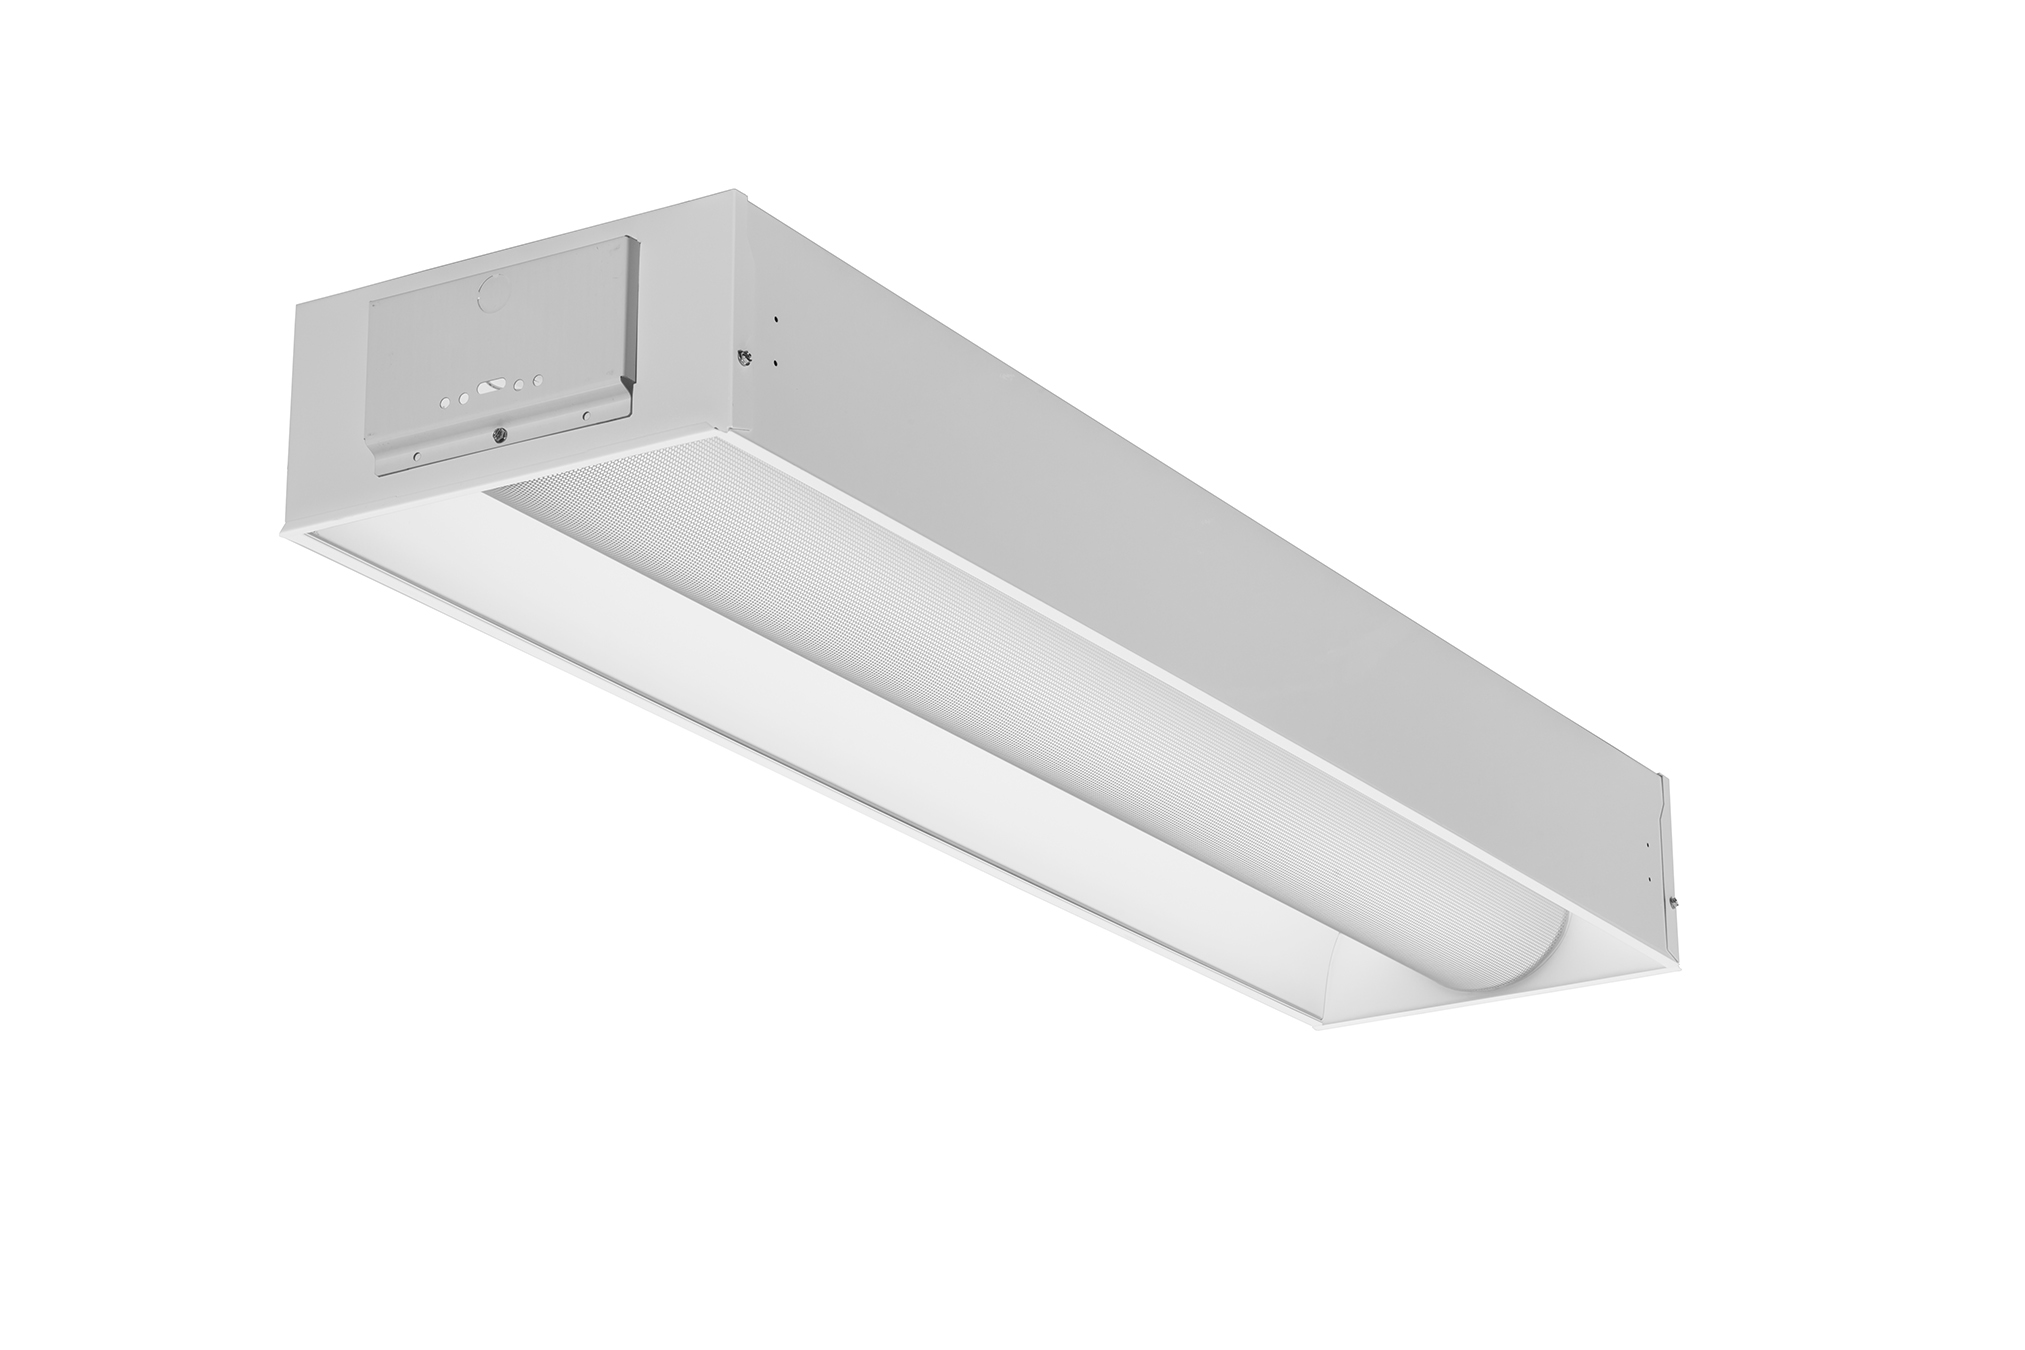 AVLED_AVLD 1x4 3 qtr standard illuminated